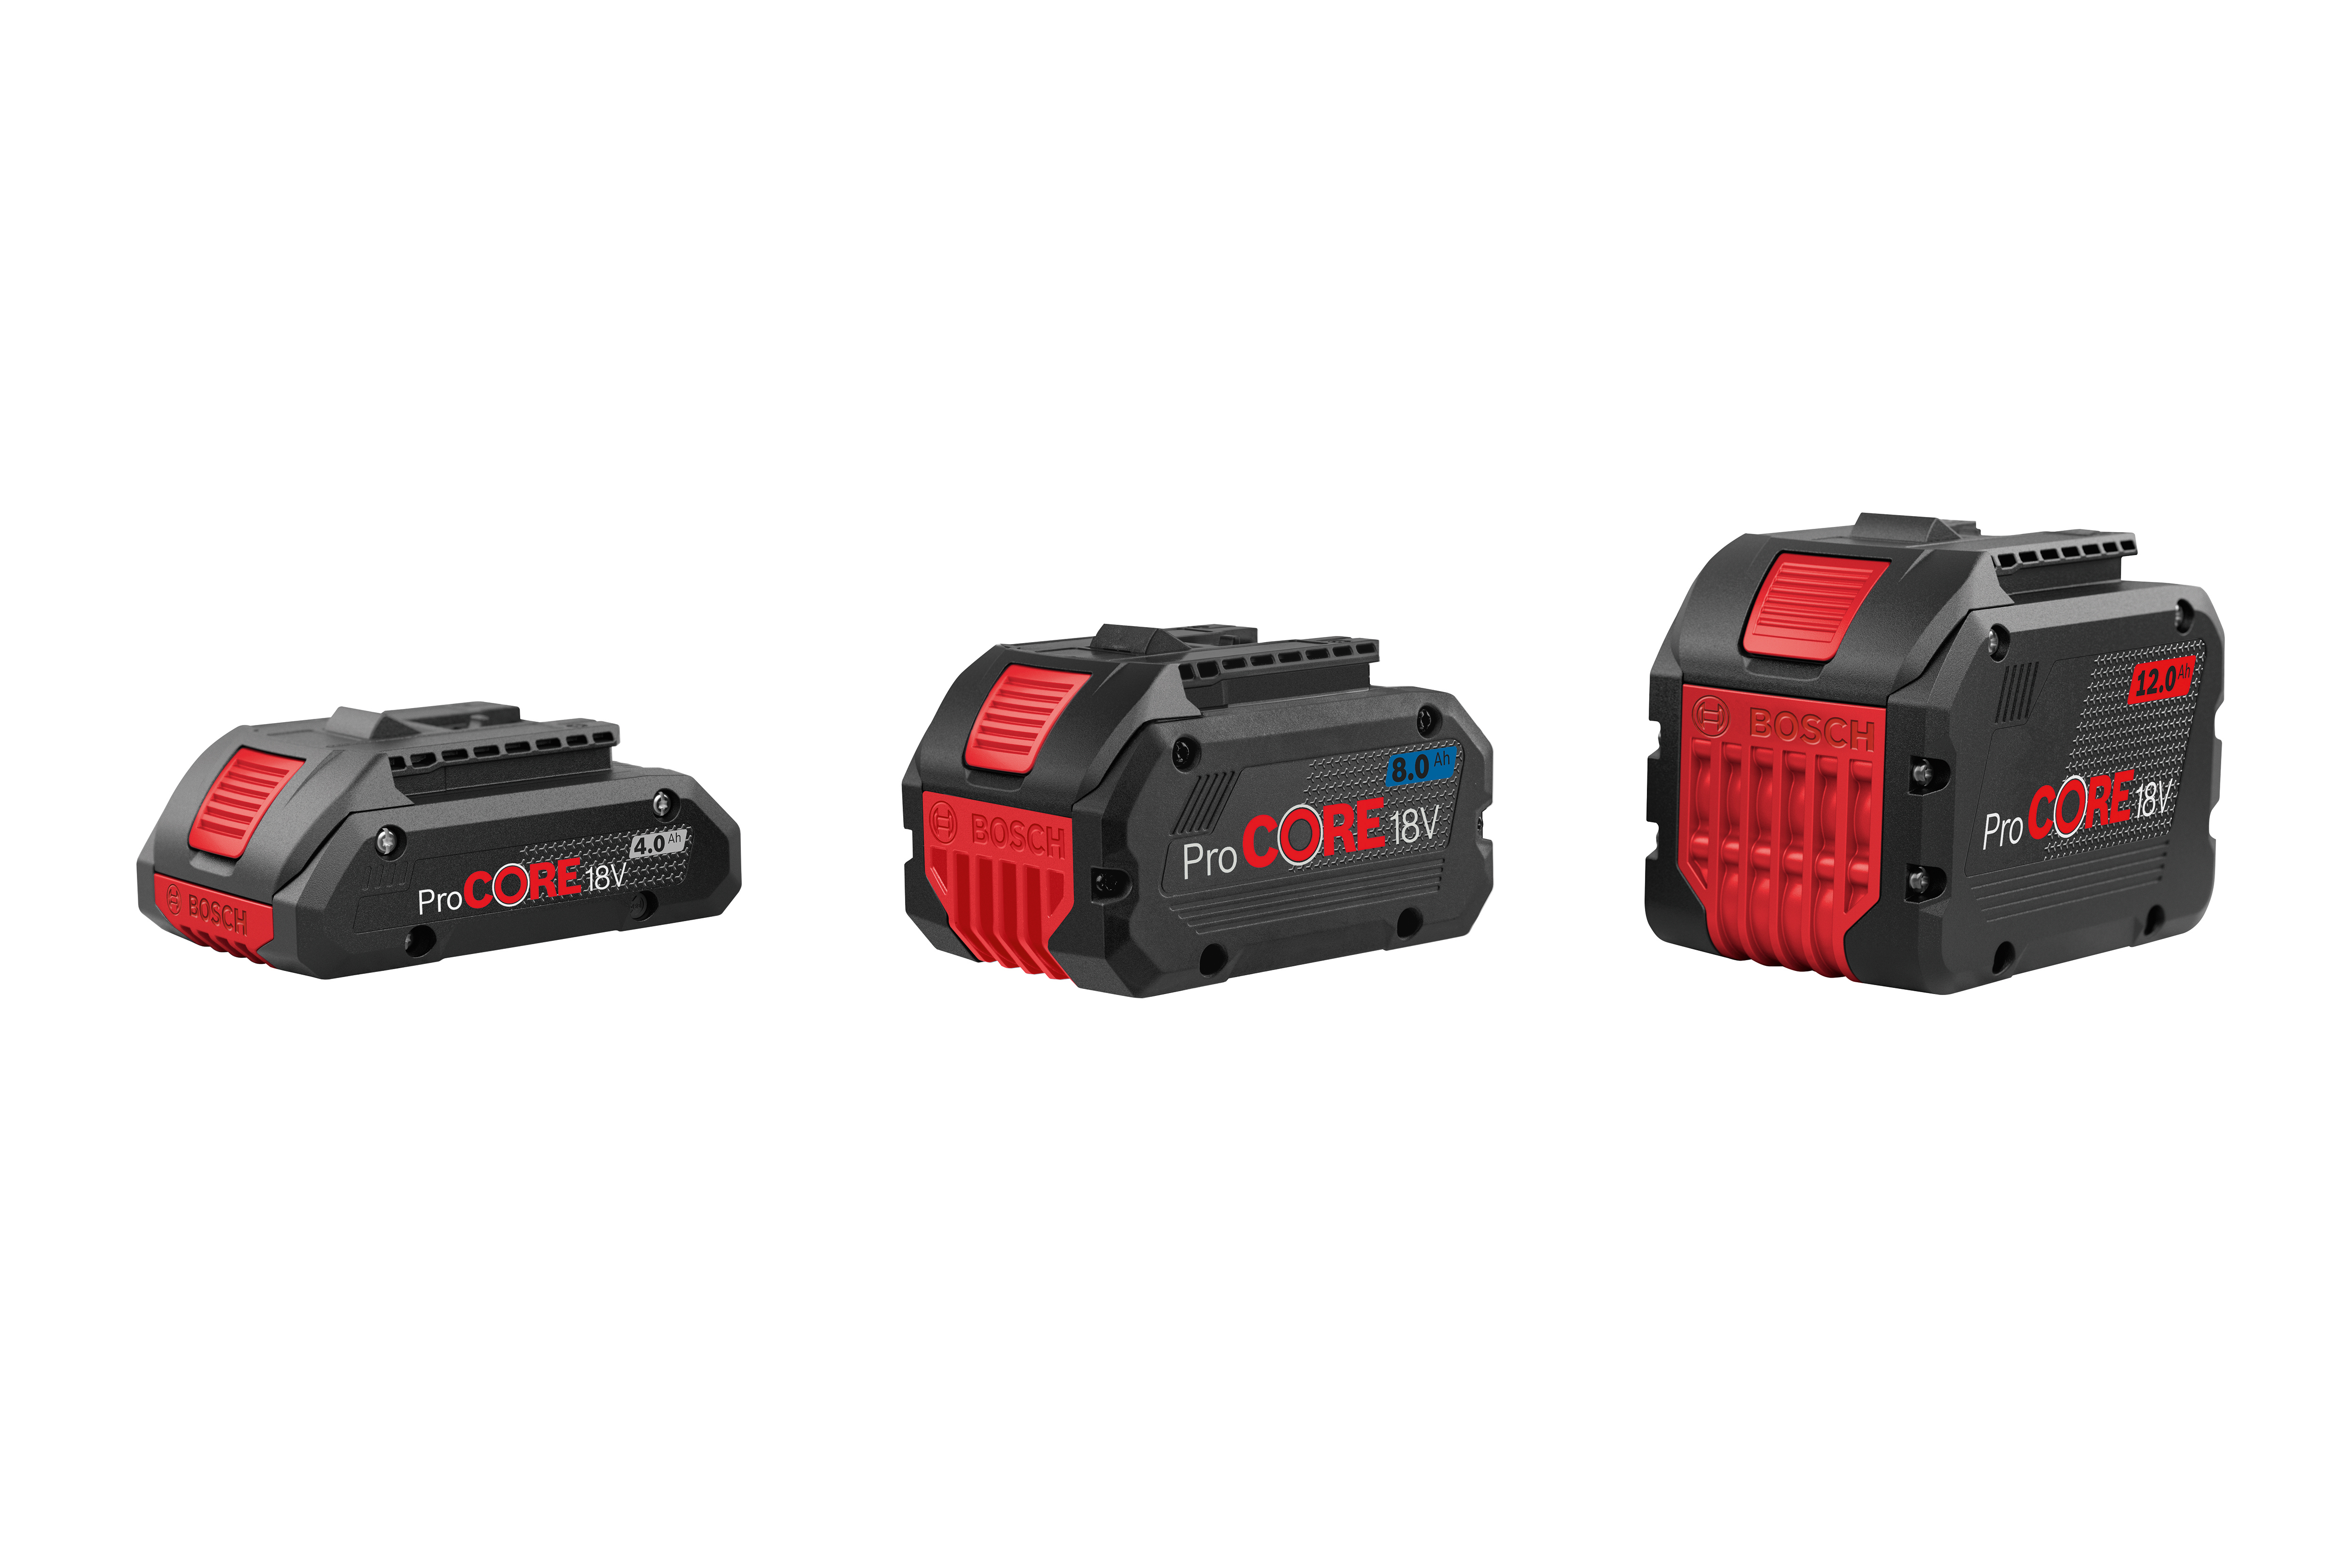 Most compact high-performance batteries on the market: new Bosch ProCore18V series for professionals